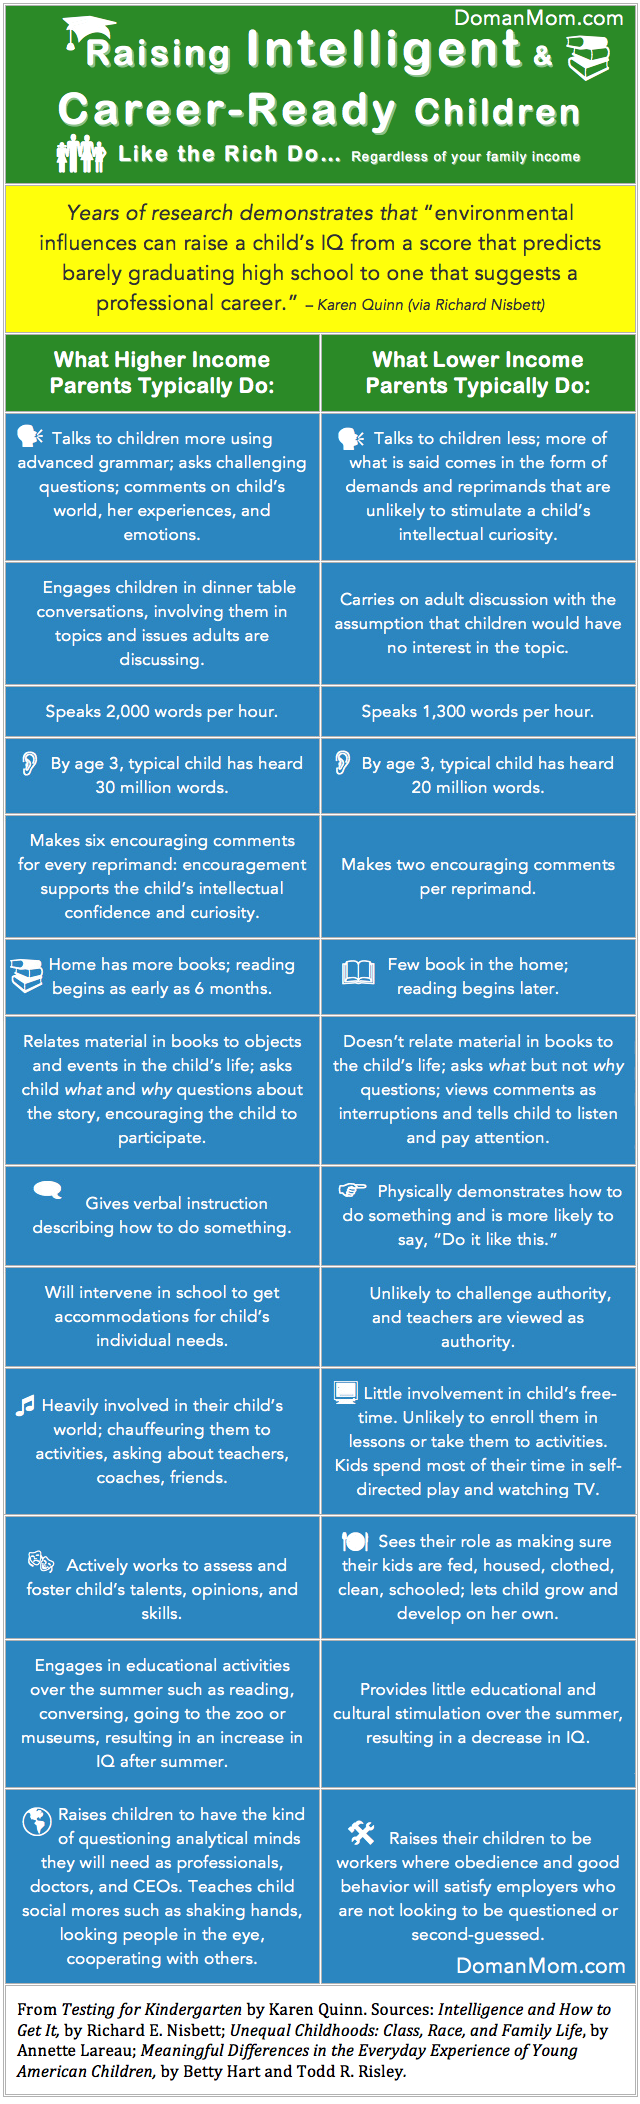 How to Achieve the Educational Outcomes of the Upper Class (Regardless of Your Income) Infographic